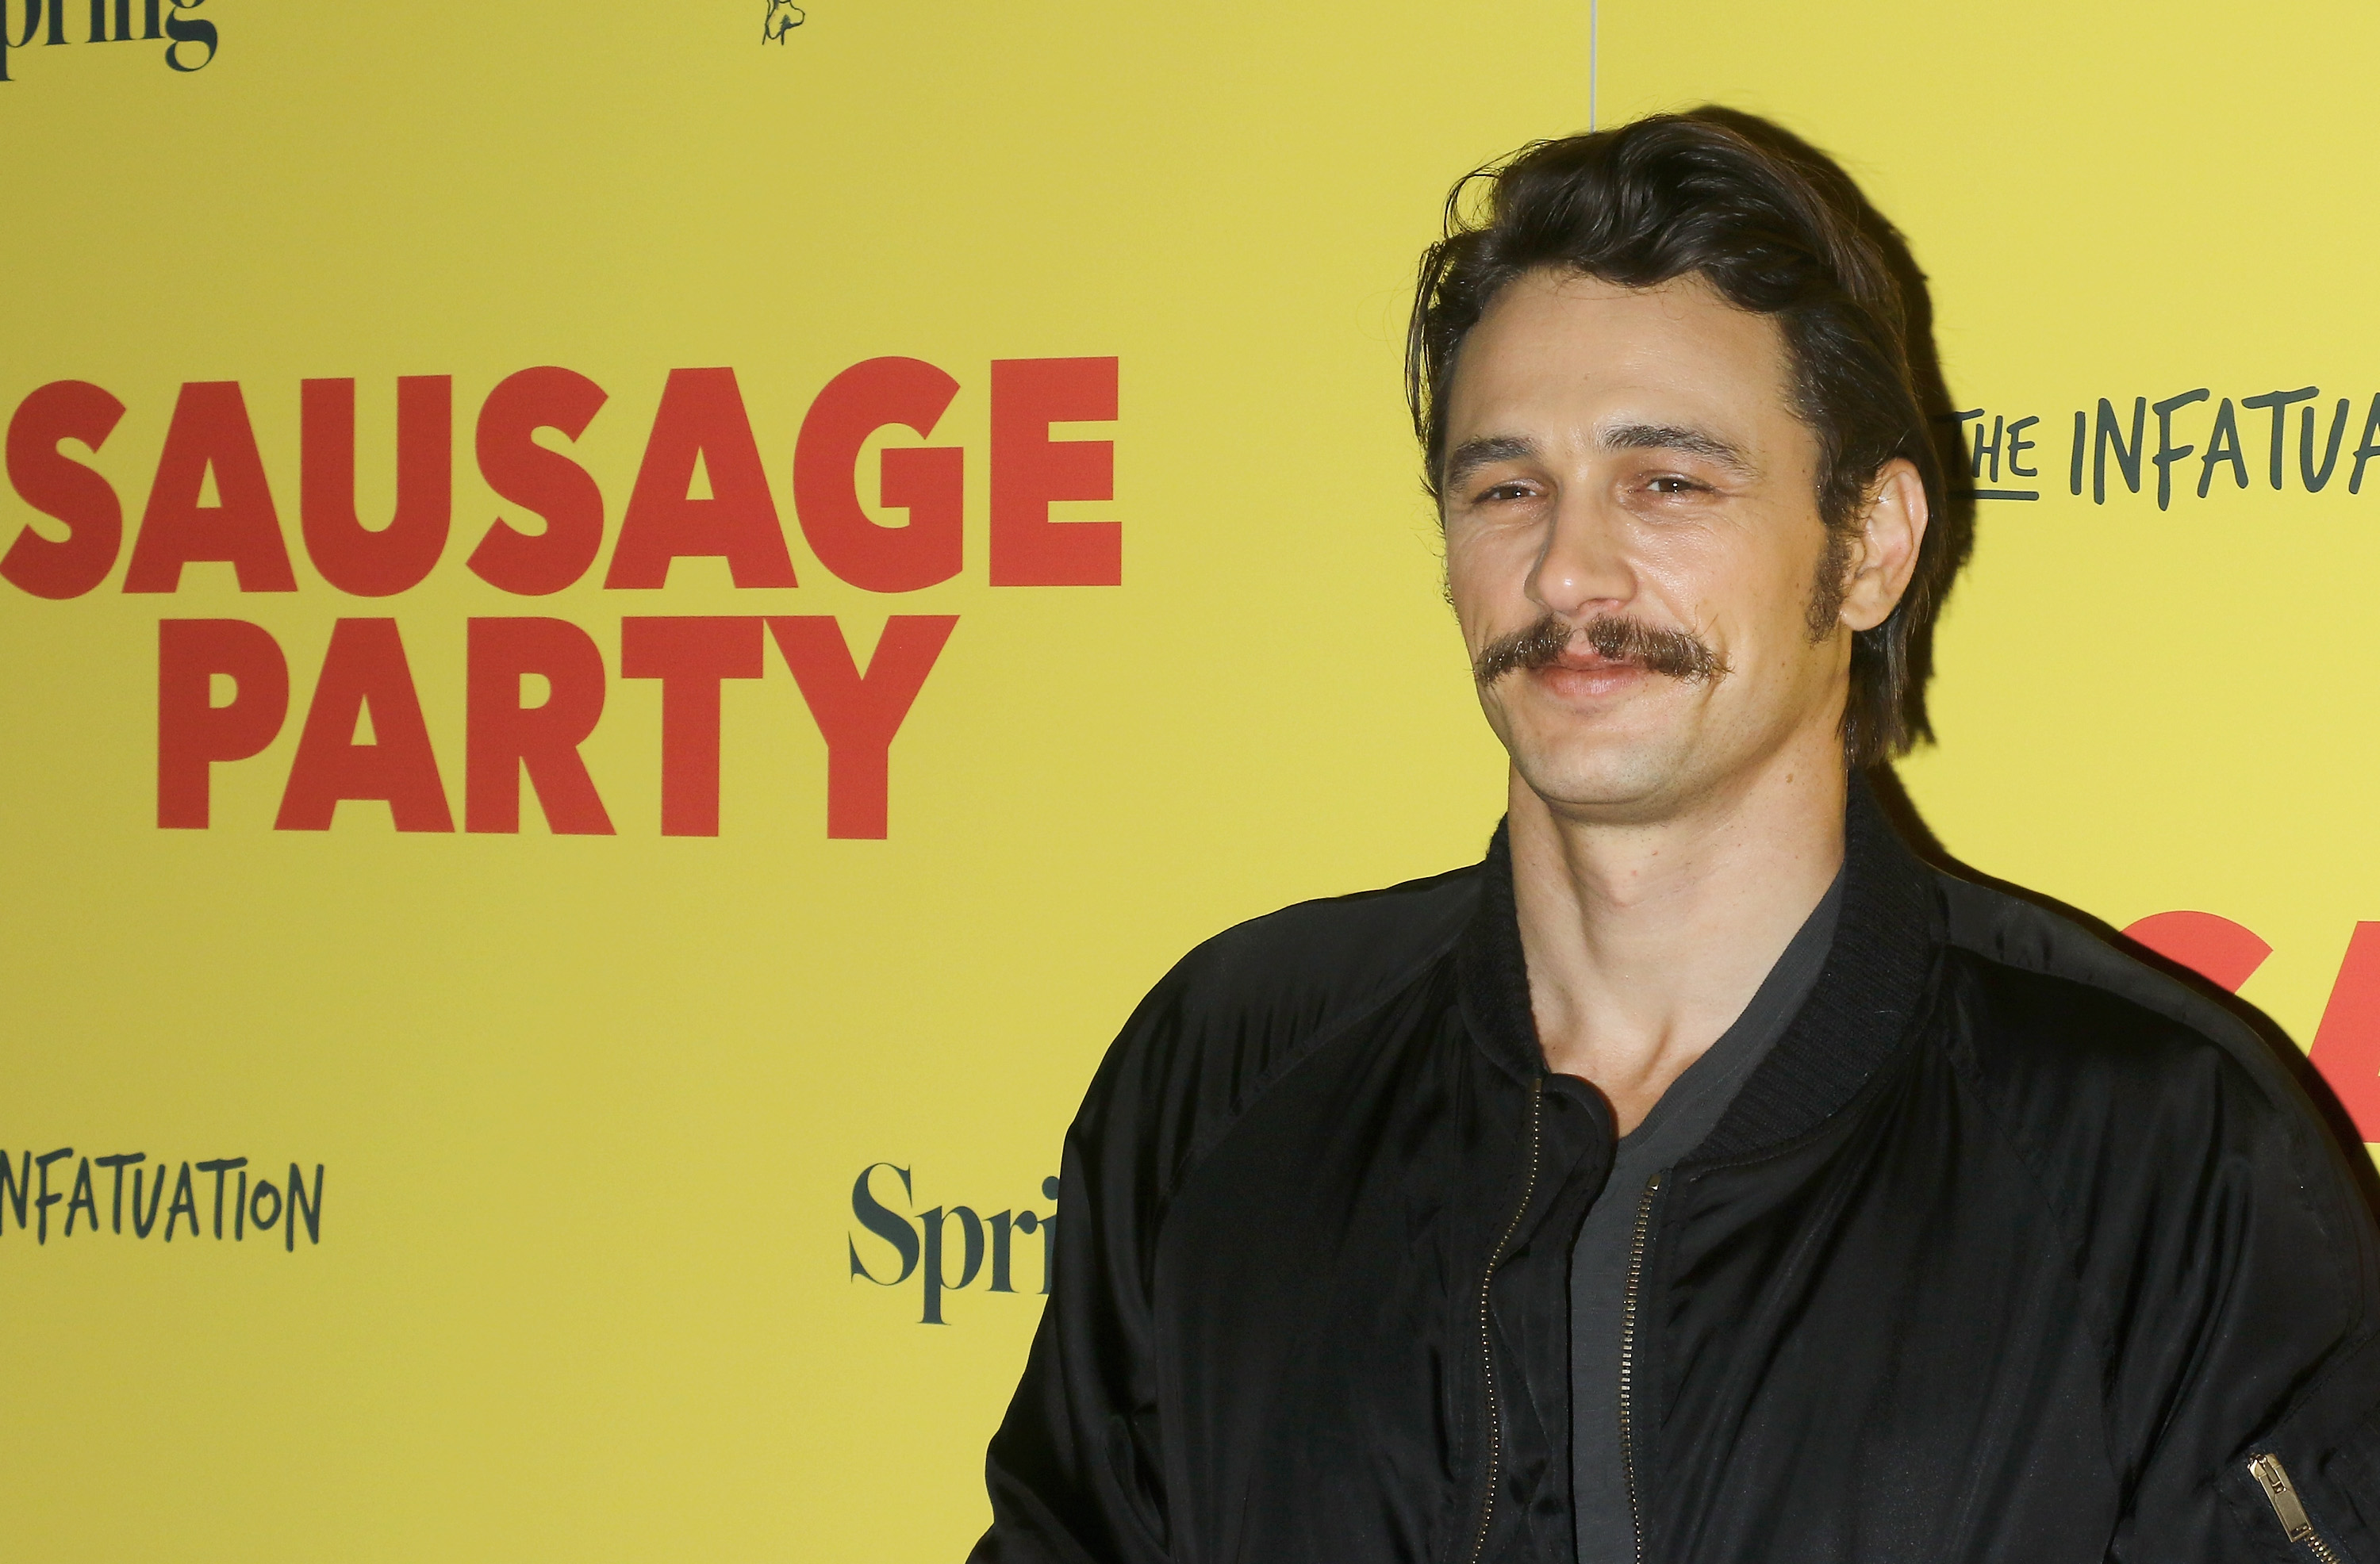 James Franco has neon ombré hair now and it's strangely working for us